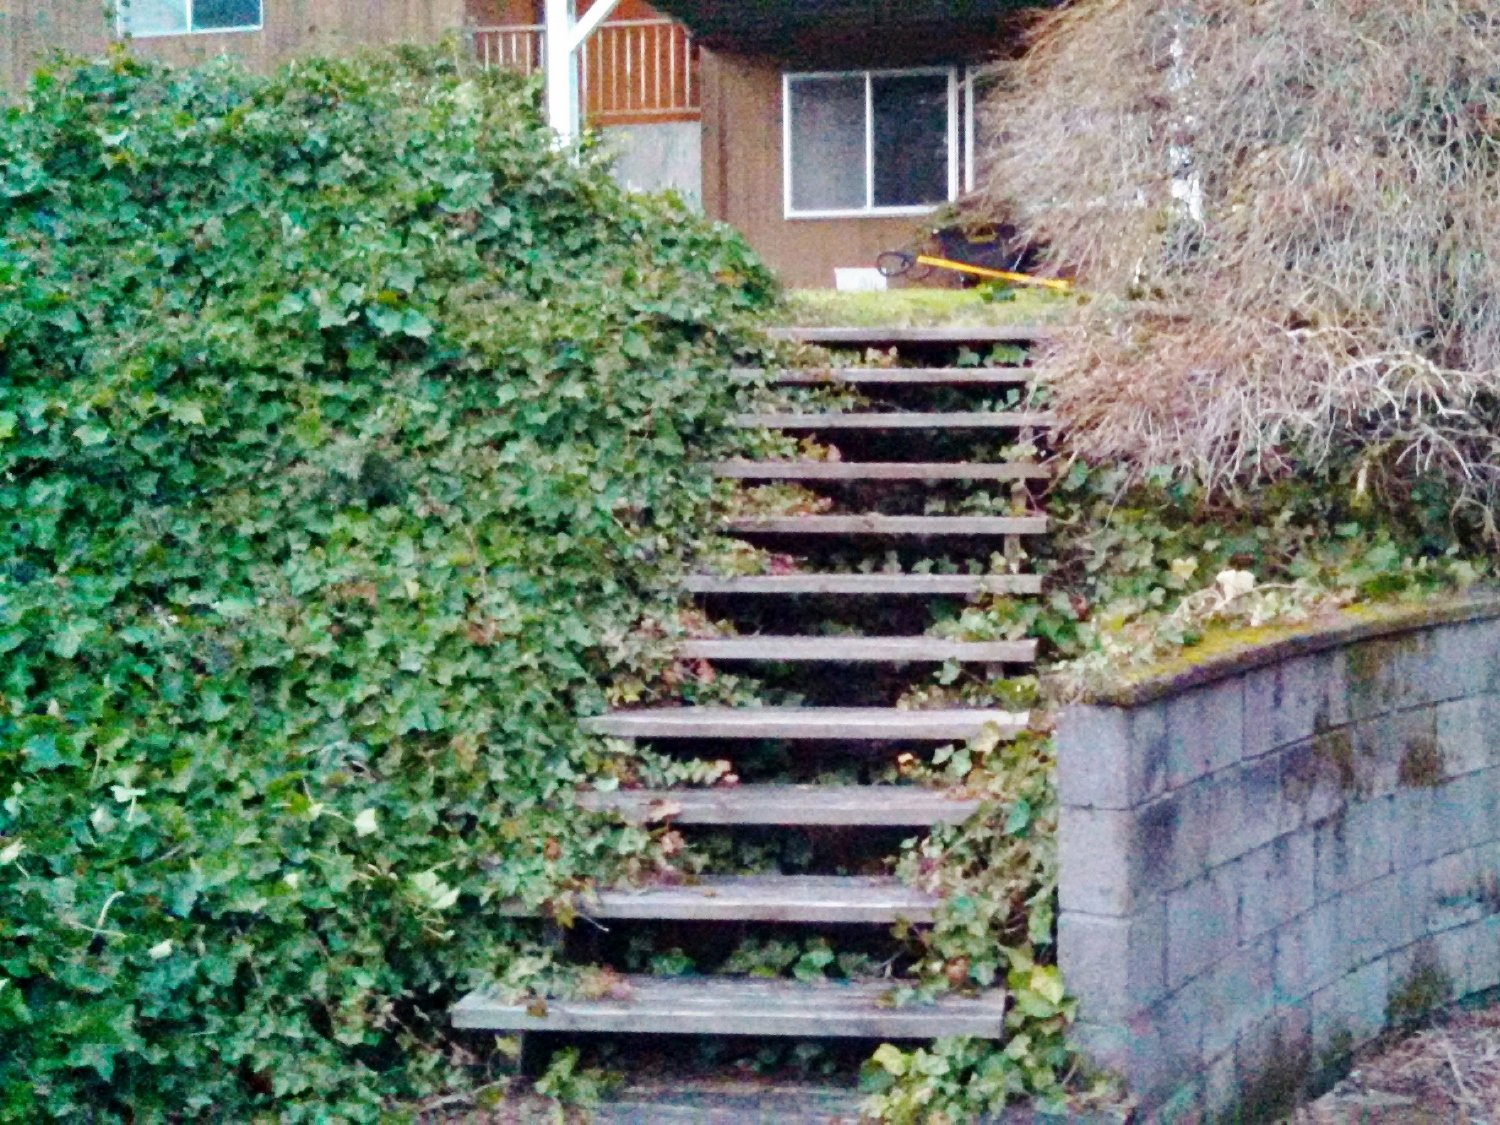 How to Get Rid of Ivy for Good: Ivy covering stairs